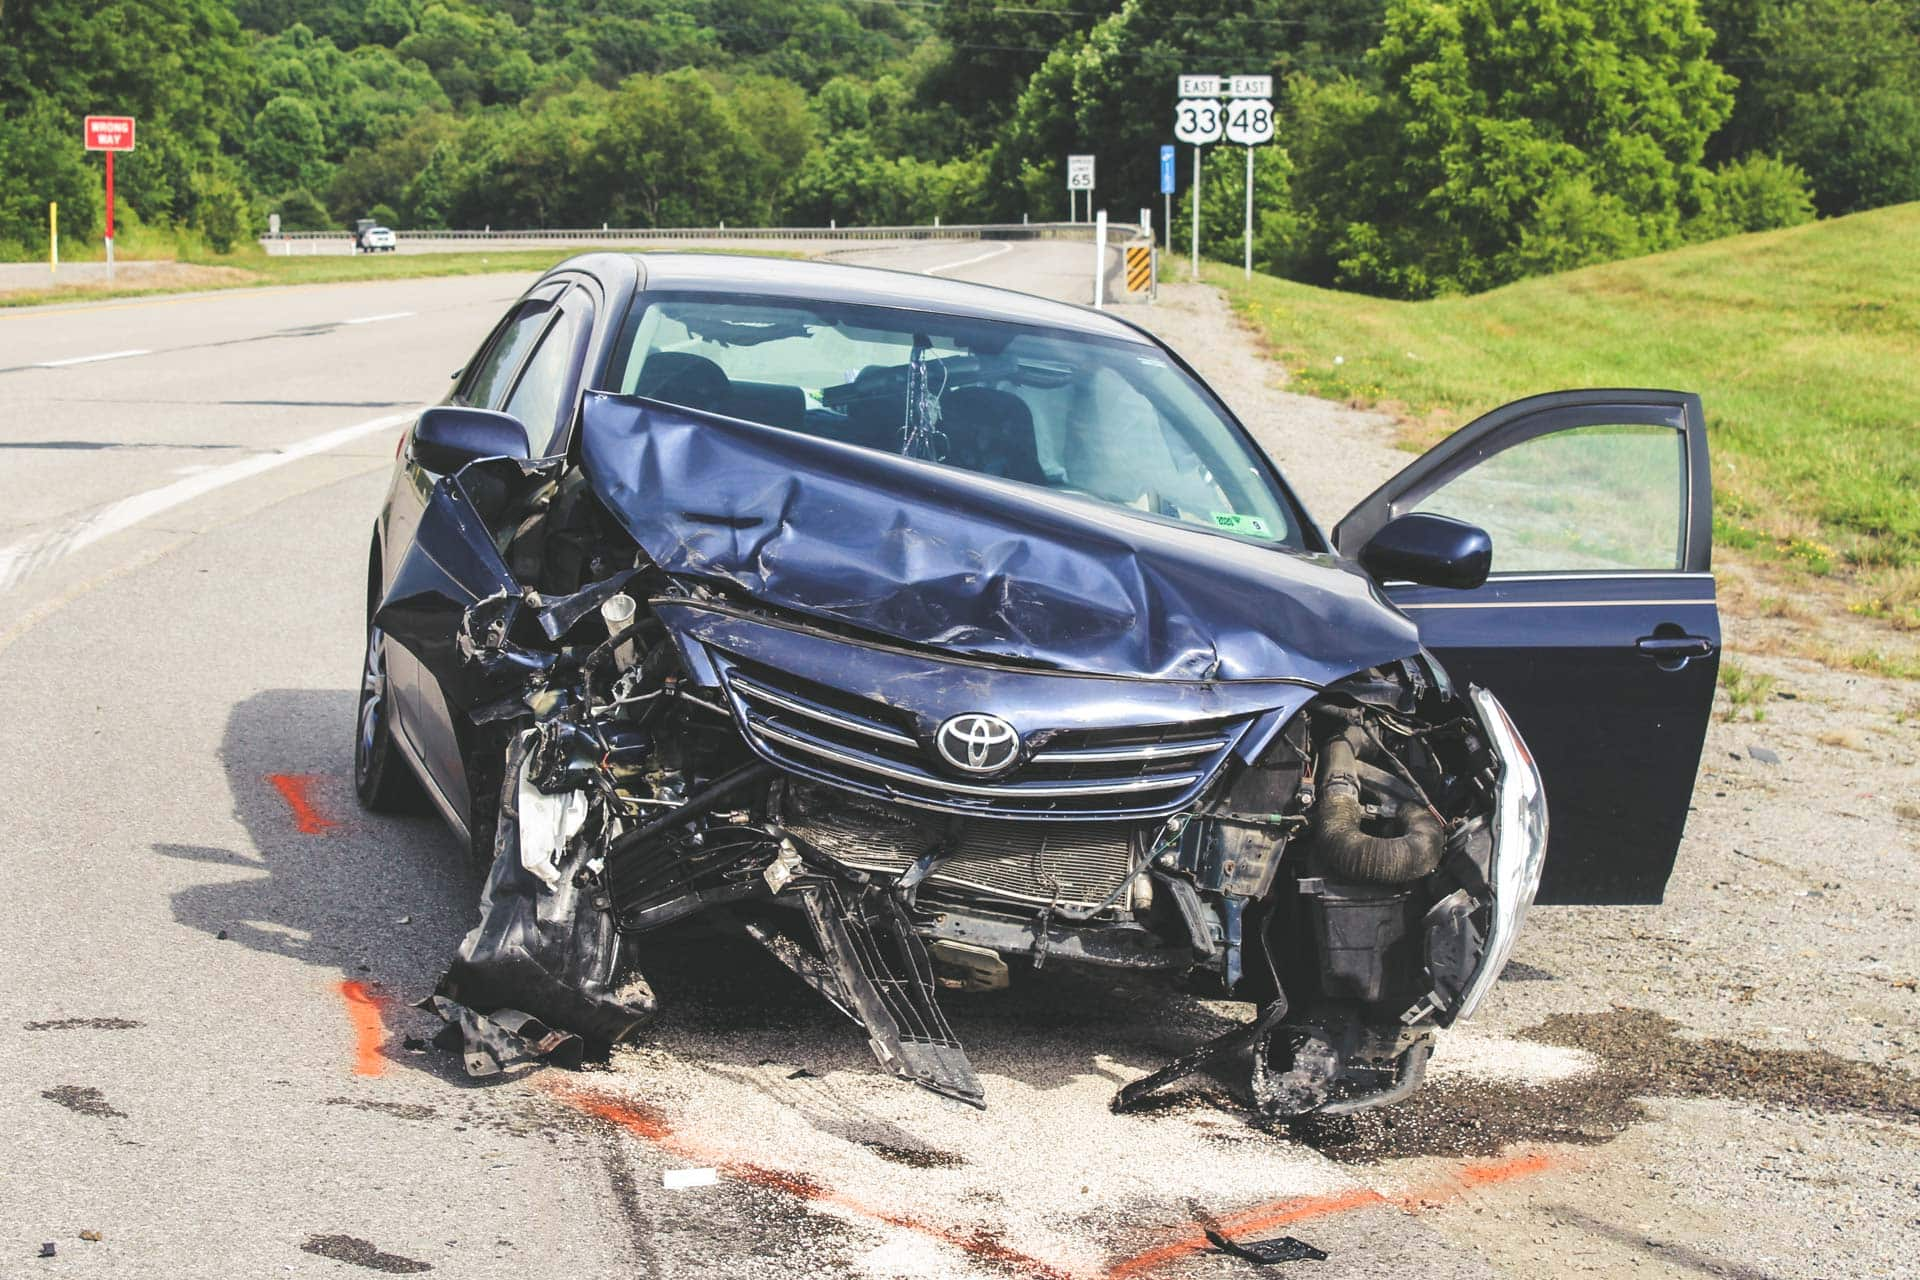 Three vehicles involved in wreck at Route 33 / Kesling Mill intersection